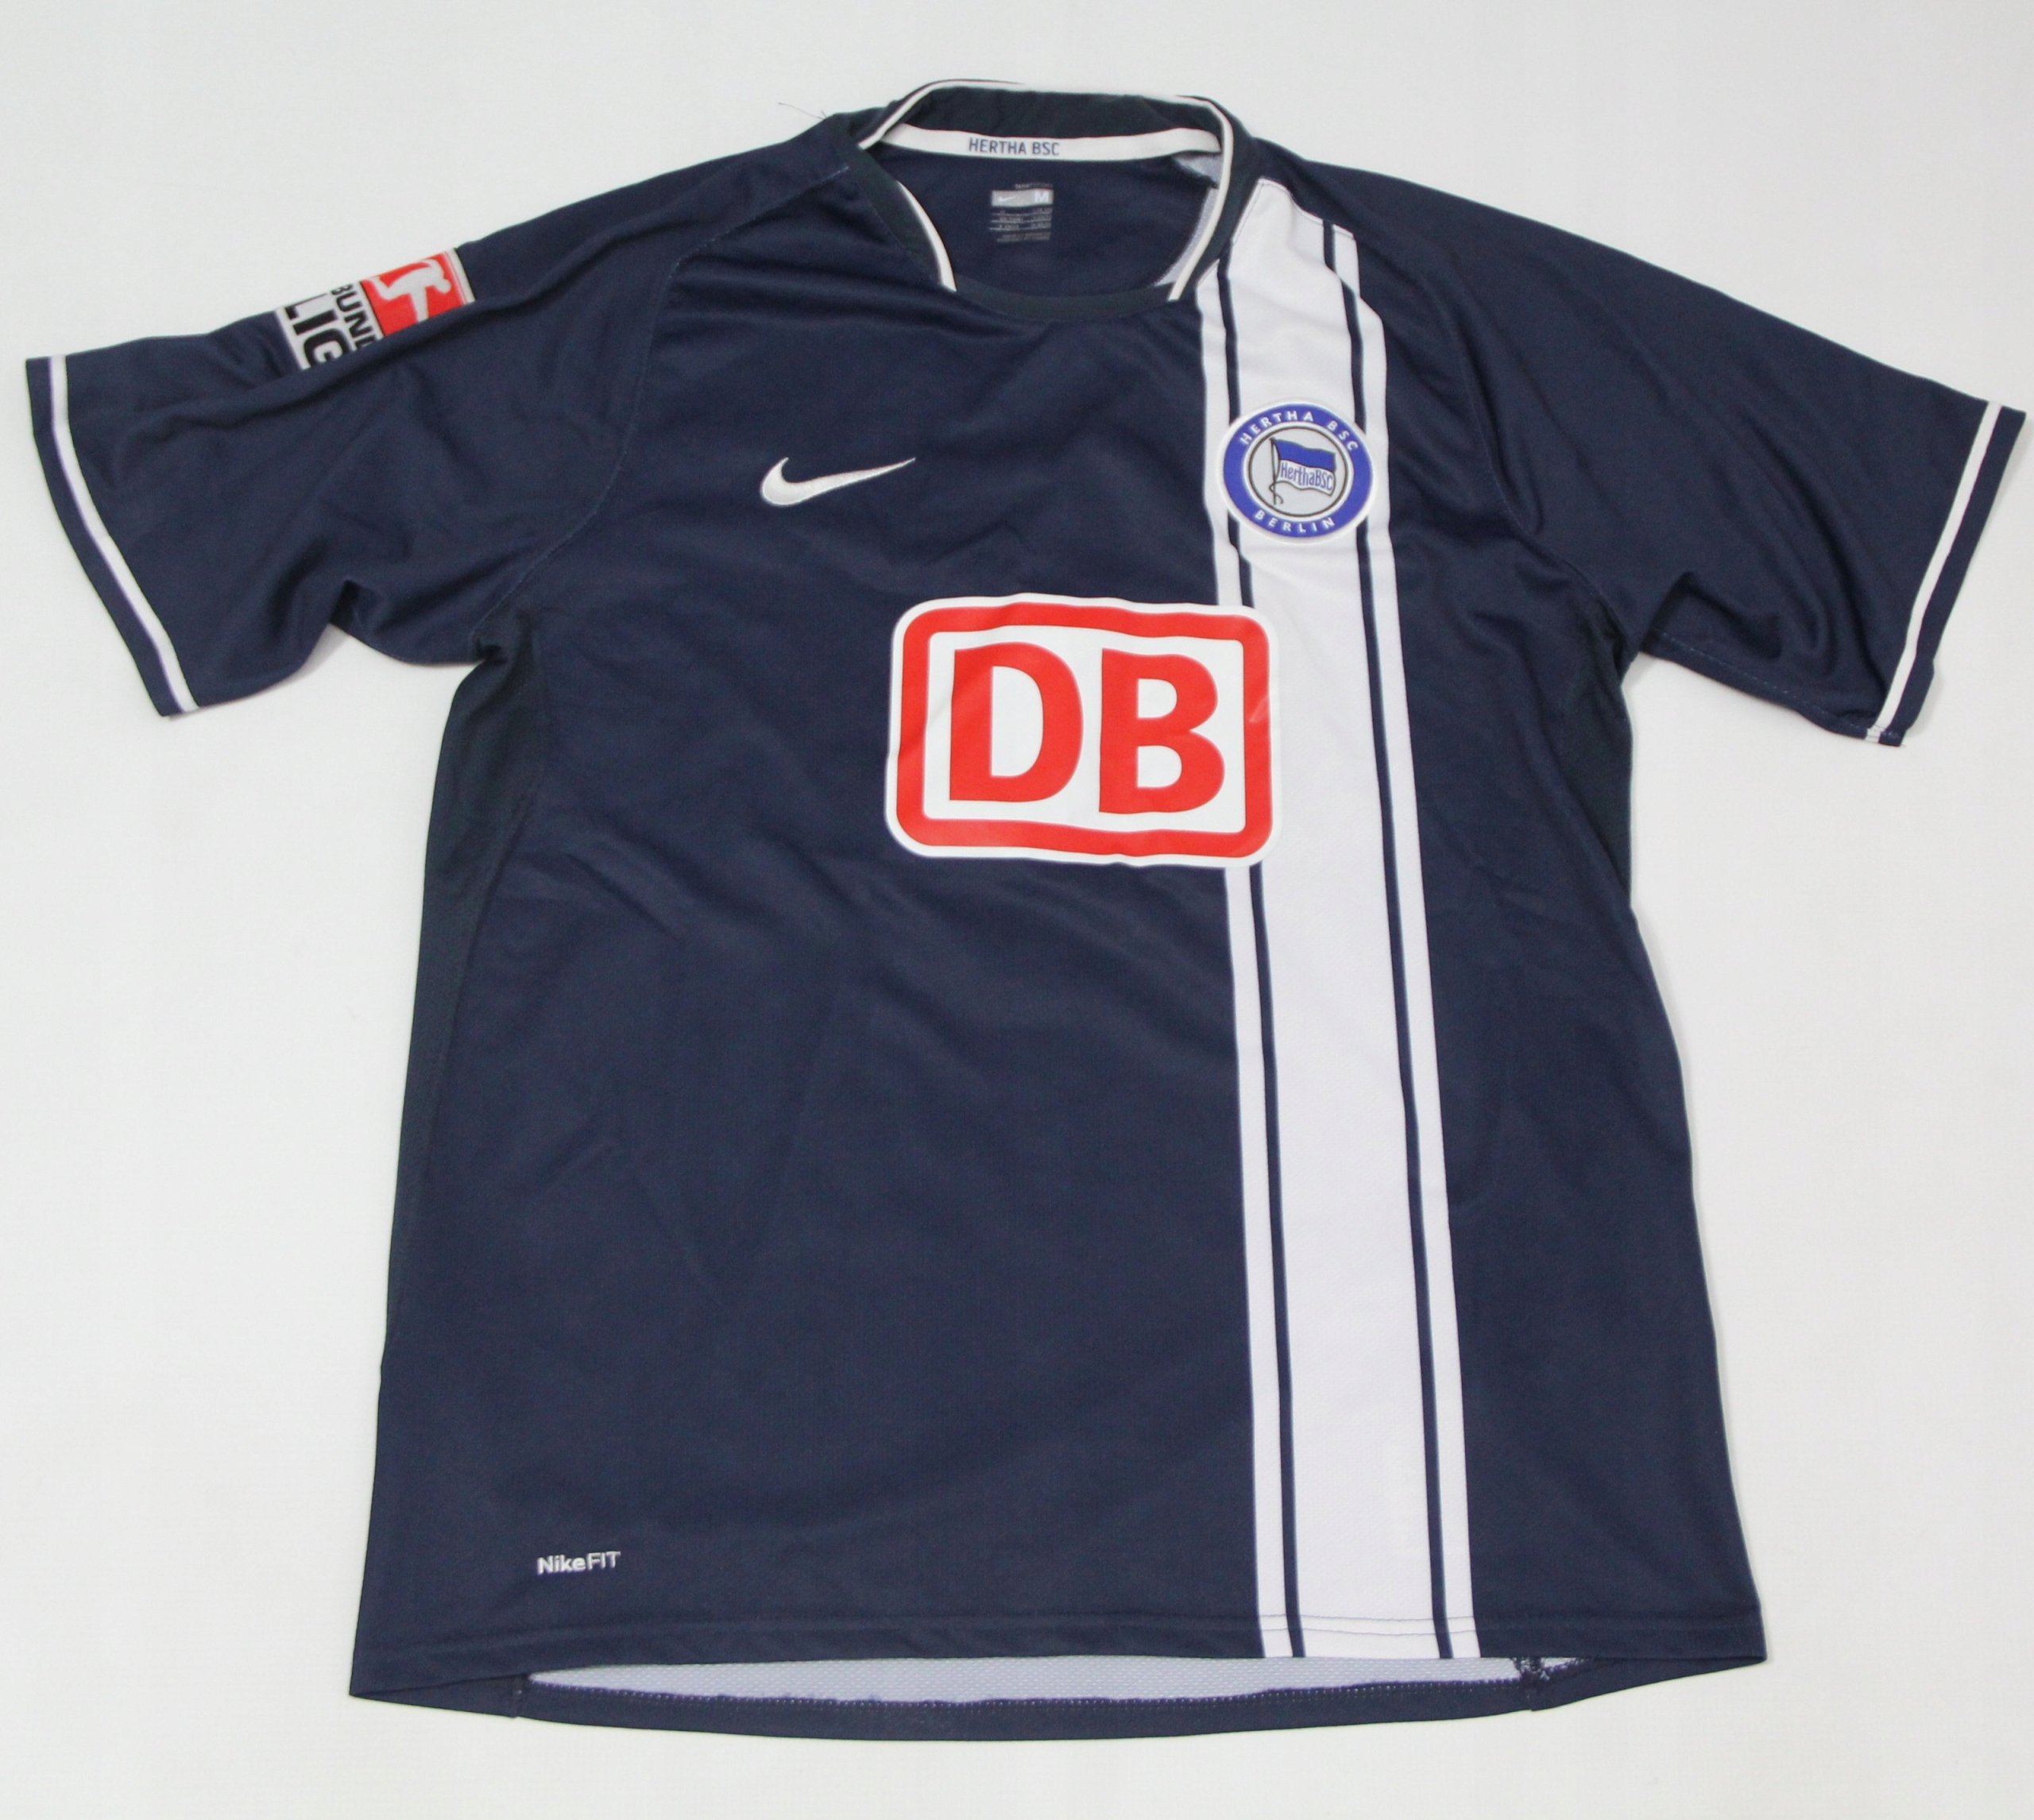 Koszulka Nike Hertha Berlin DB 5-WILLEMEN